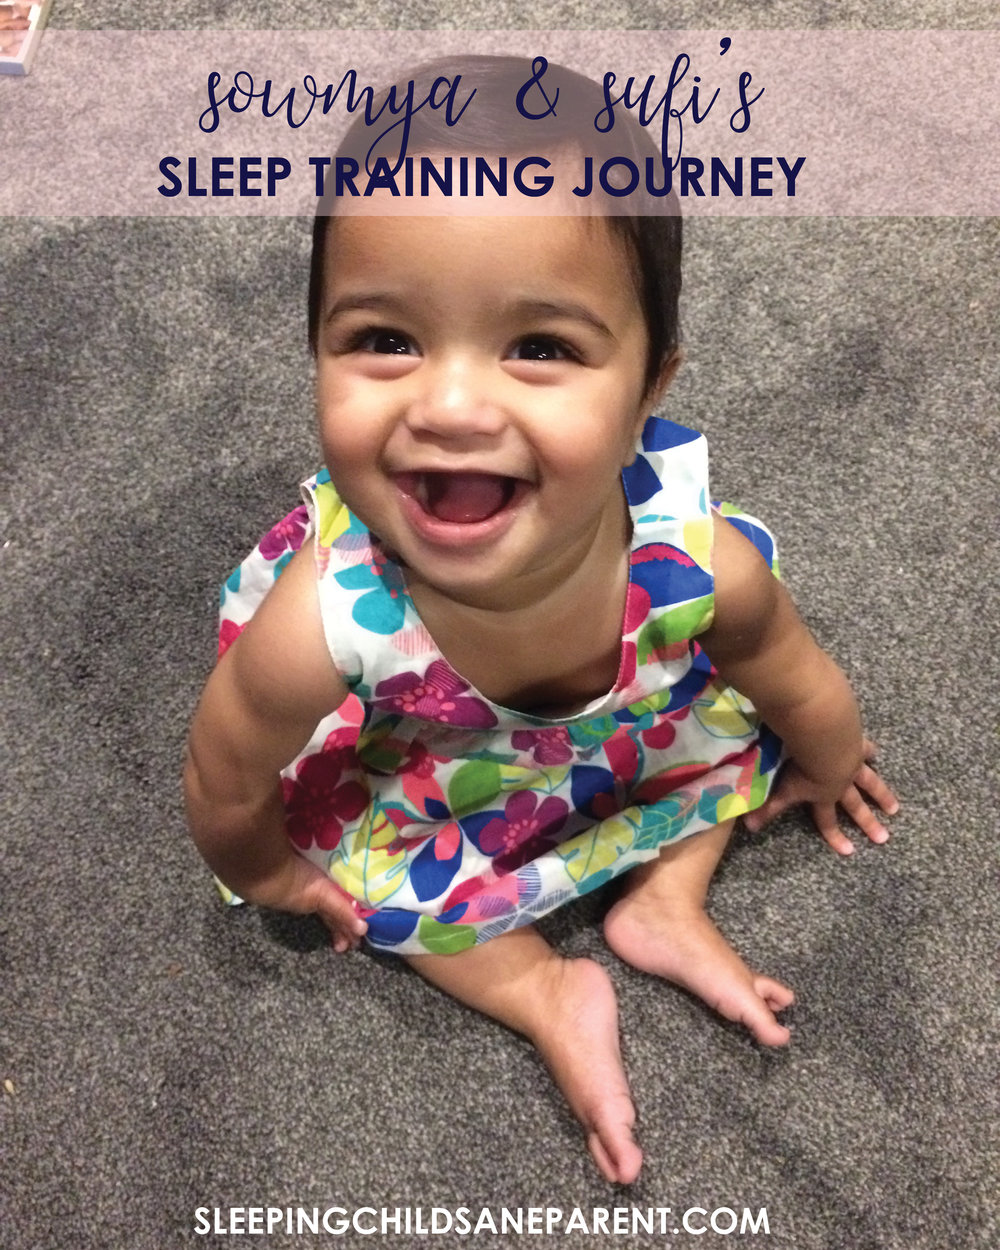 Ever wondered what it's like to work with a sleep consultant to teach your child important sleep skills? Check out this blog post from the perspective of a client to find out what the process looks (and feels!) like.